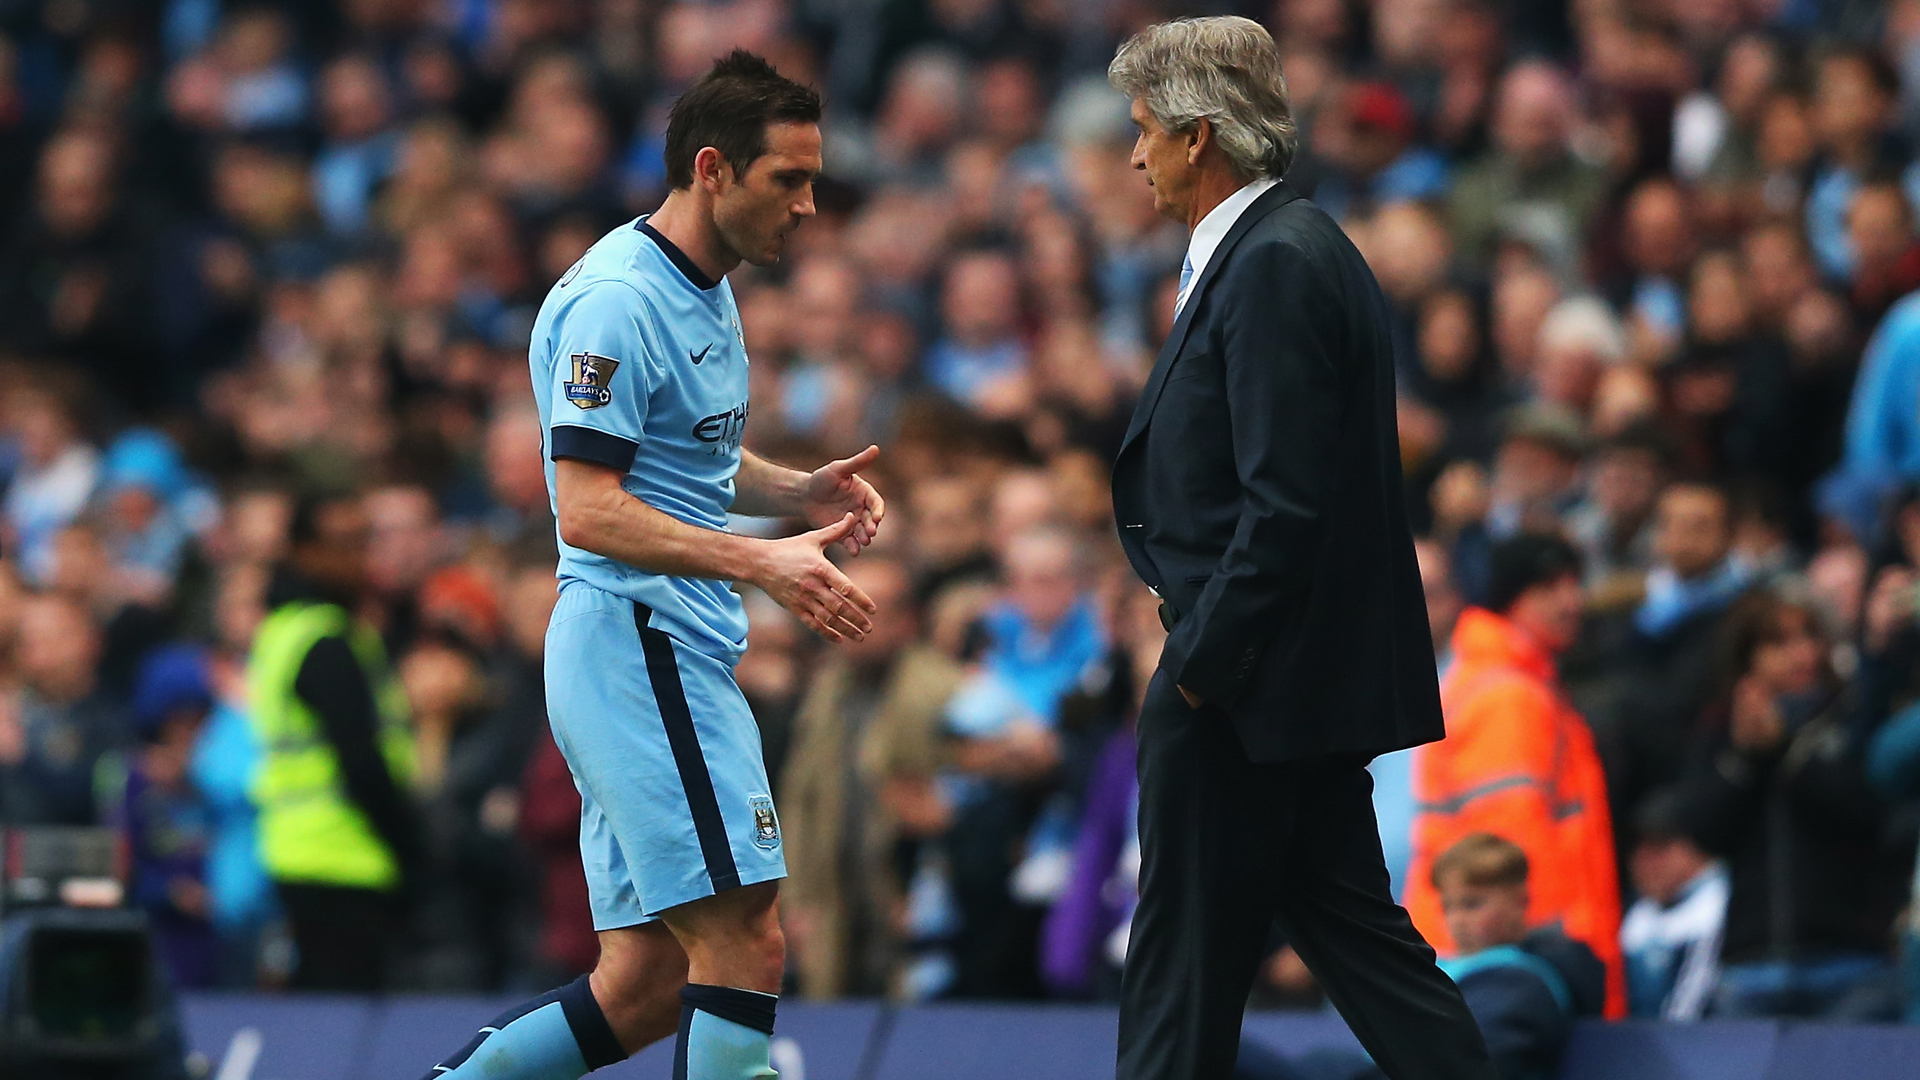 Lampard leaving Chelsea helped him as a manager – Pellegrini